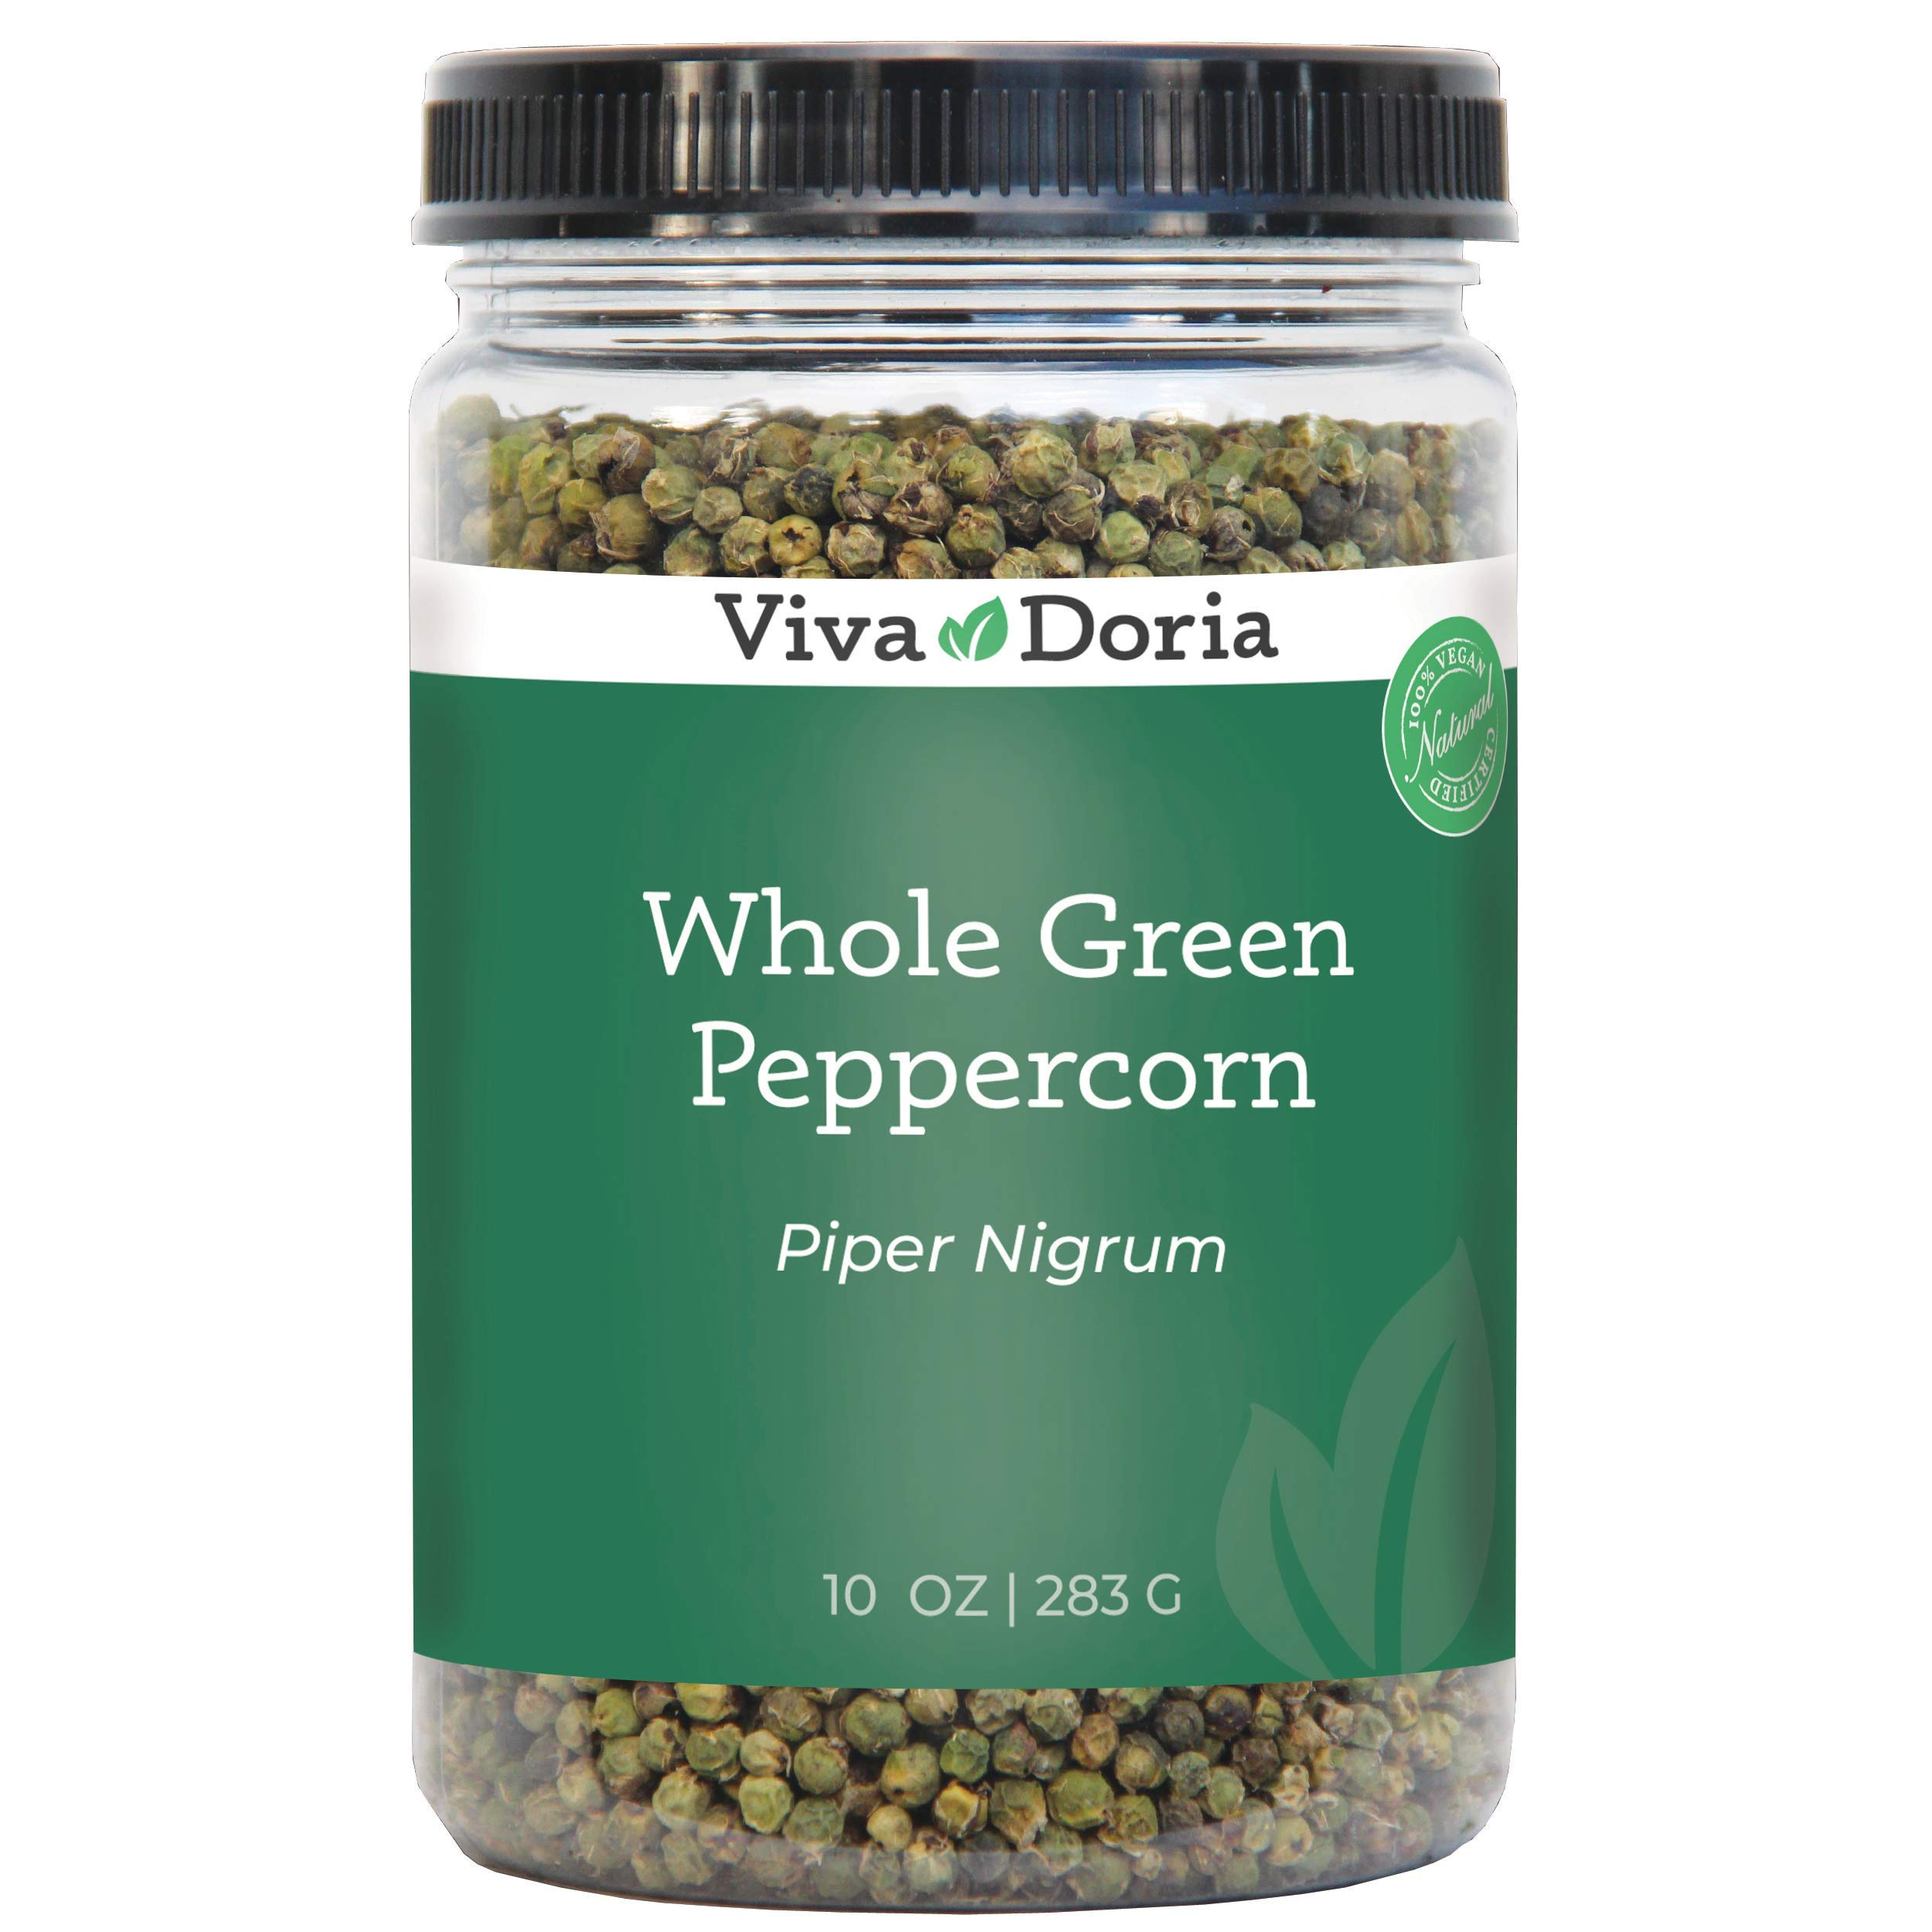 Viva Doria Whole Green Peppercorn (Whole Green Pepper) 10 oz for grinder refills